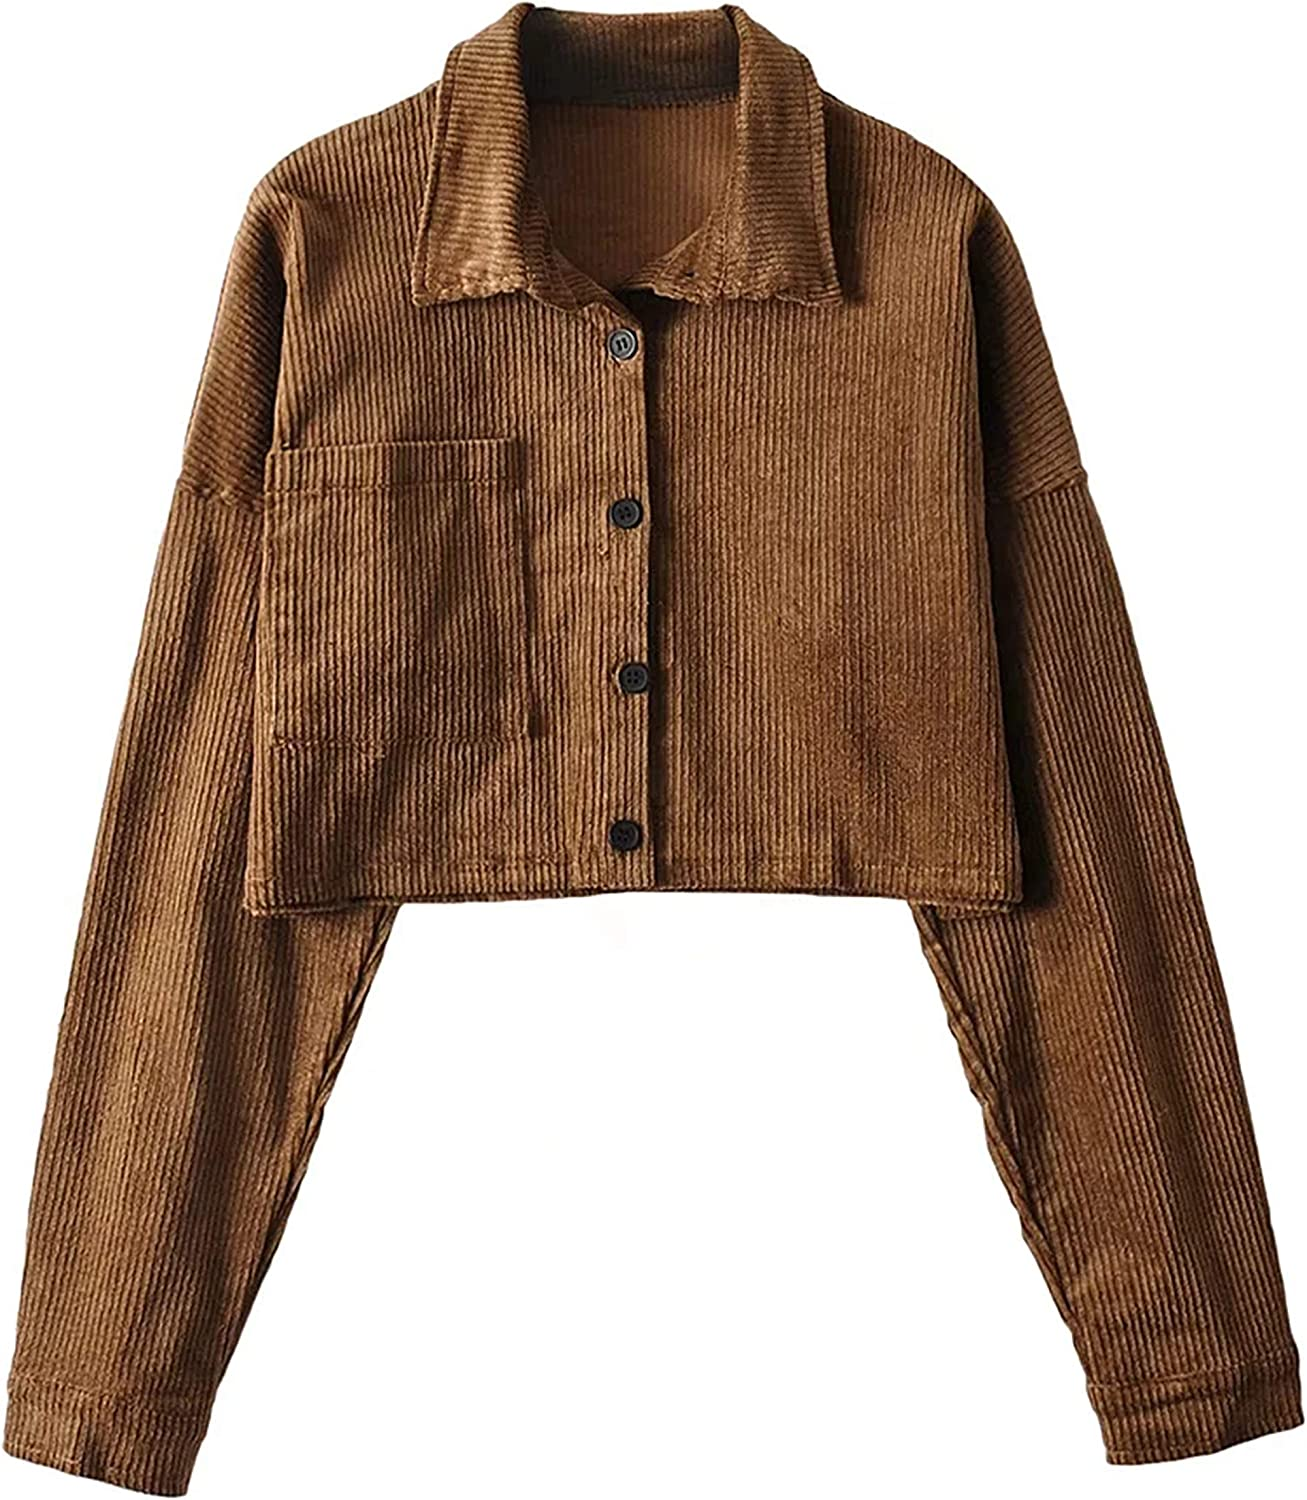 UANEO Womens Corduroy Button Down Long Sleeve Casual Cropped Jackets Shackets(Brown-M)